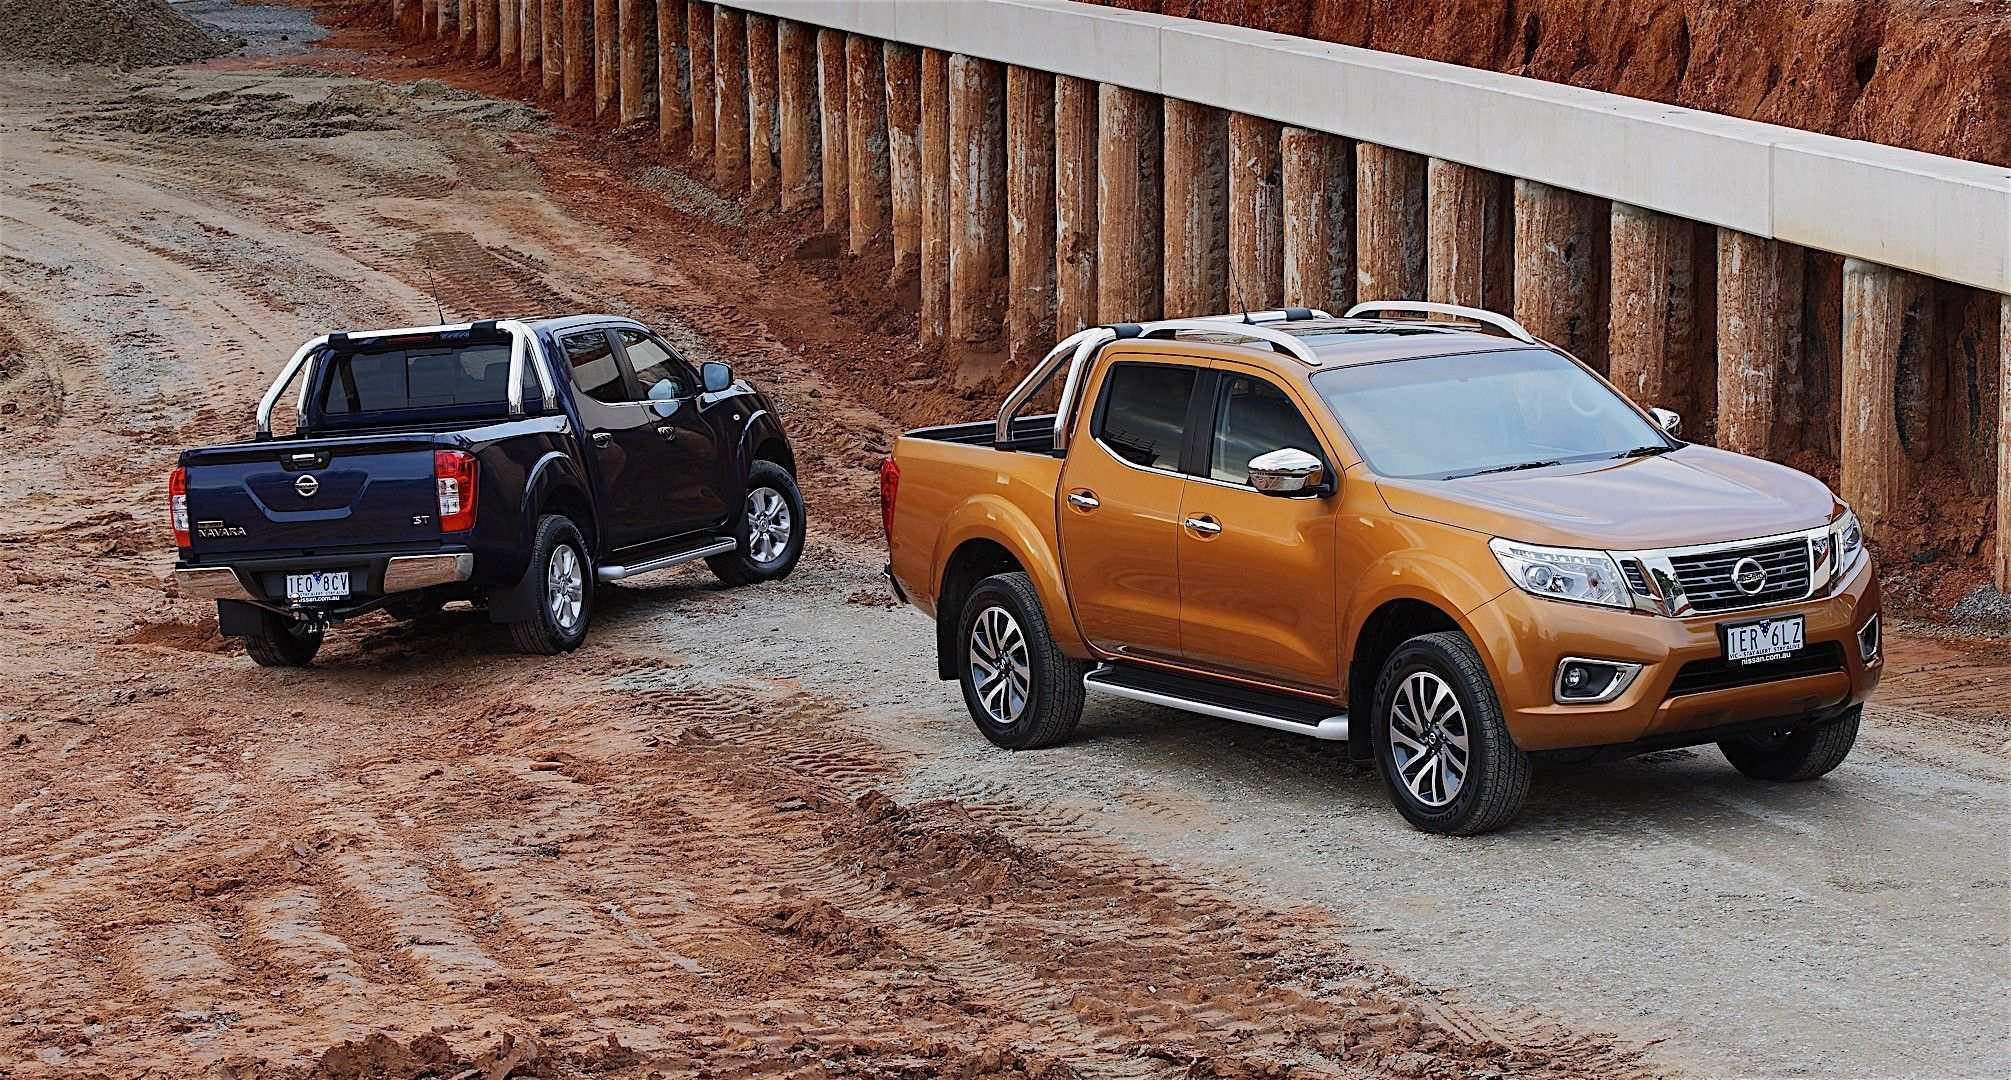 26 All New Pickup Nissan 2020 History with Pickup Nissan 2020